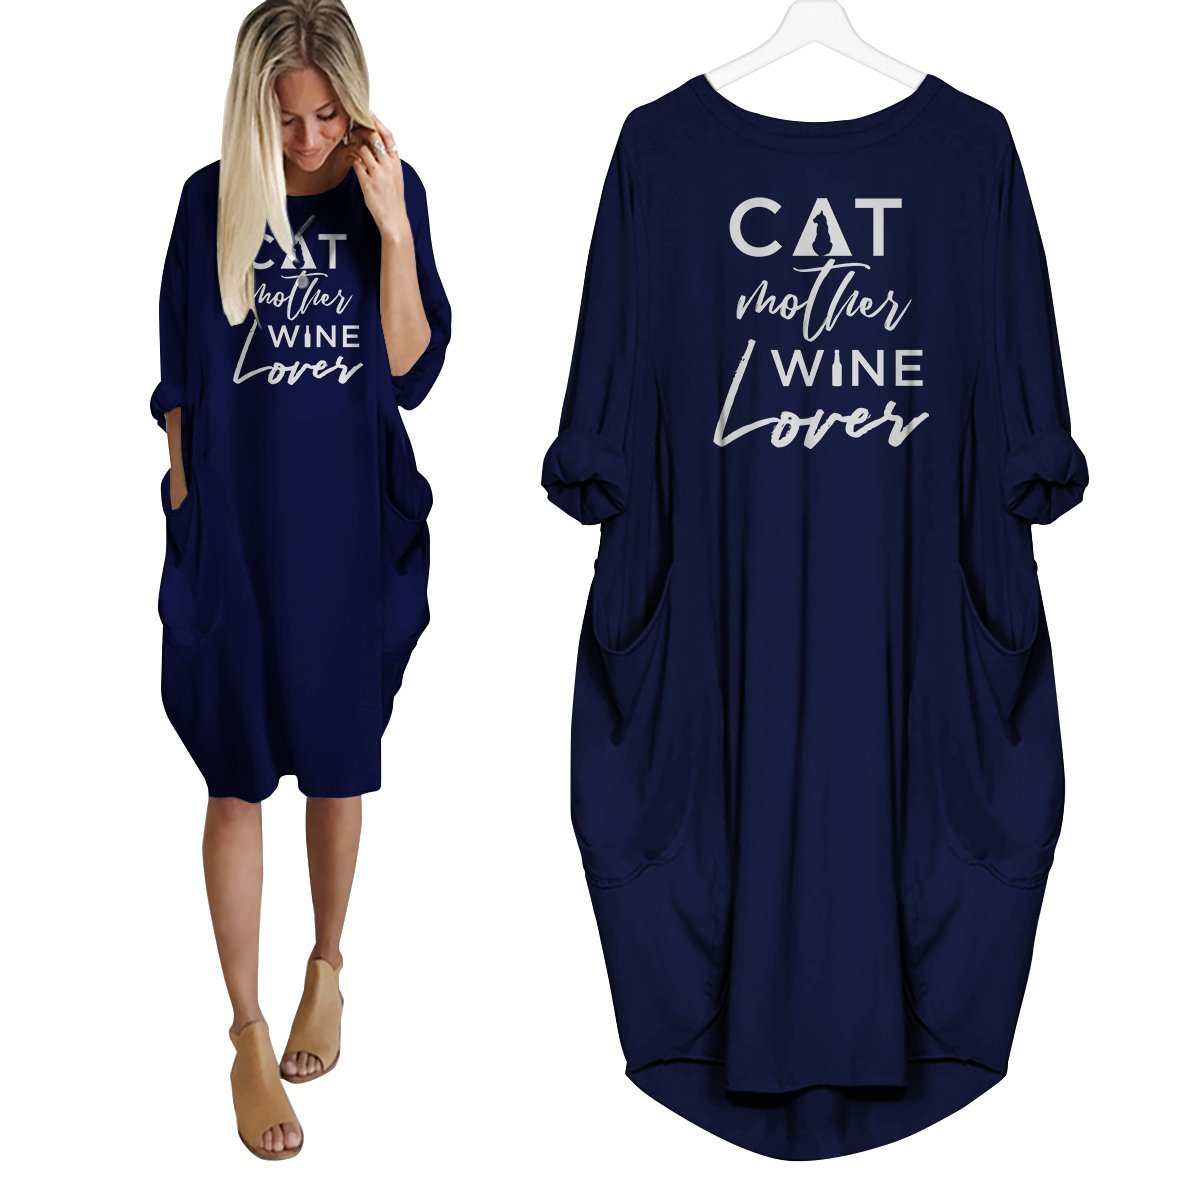 Cat Mother Wine Lover Dress Navy Blue / S